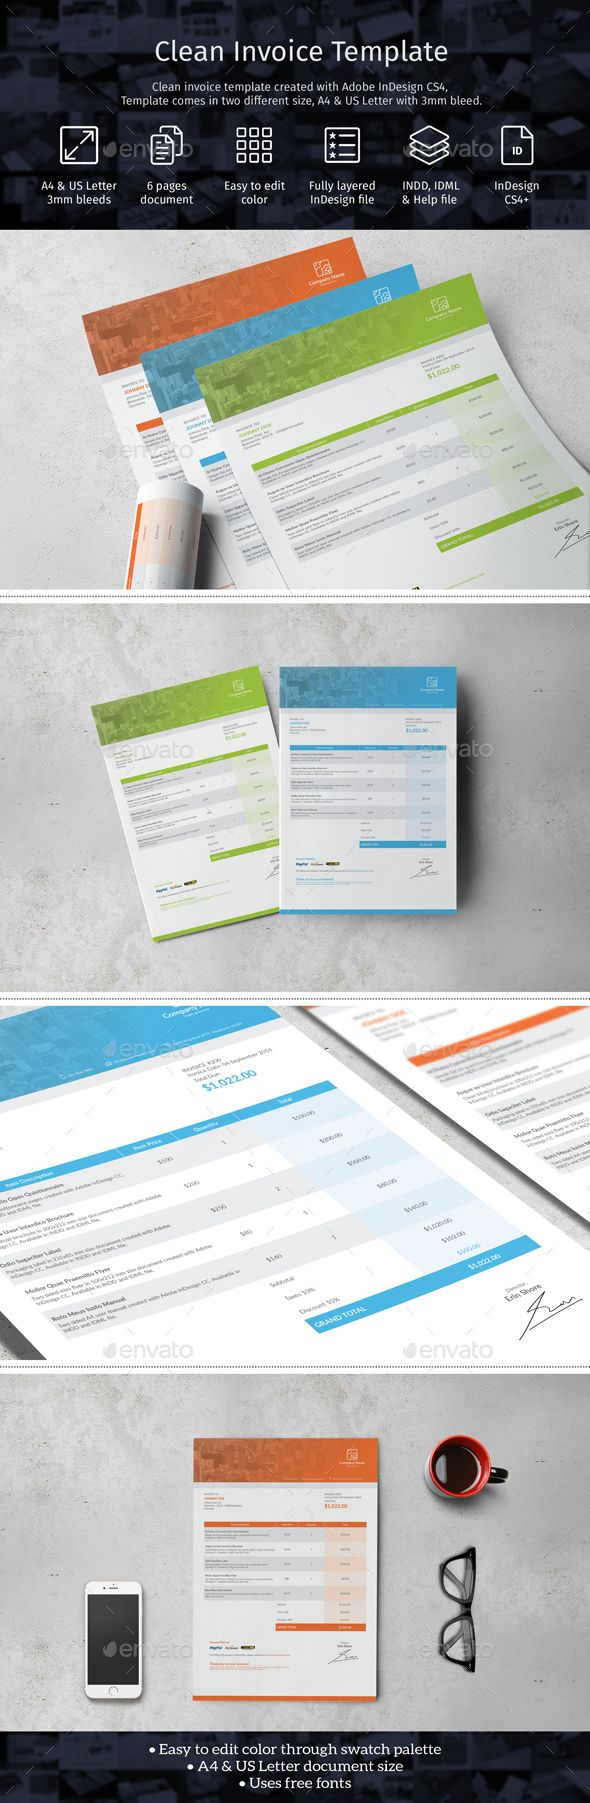 Clean Invoice Template by fisihsani Clean invoice template created with Adobe InDesign. Perfect for graphic design services, retail, and business. Template available